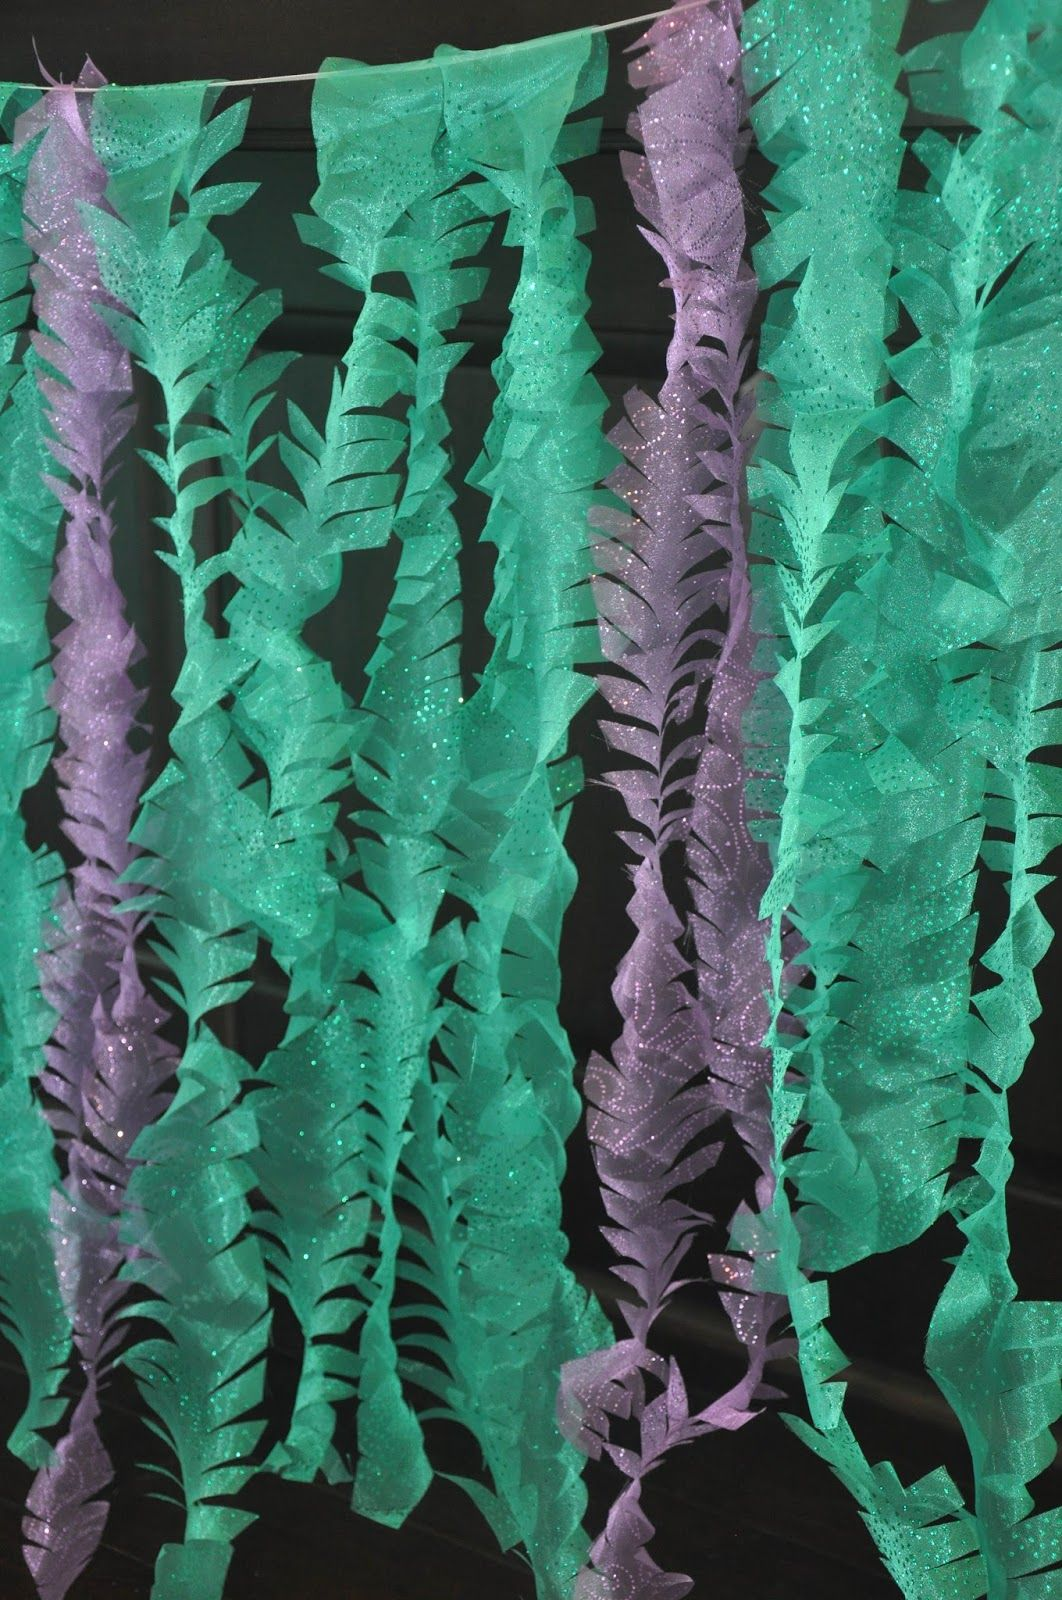 Diy Jellyfish Decorations Seaweed Decor For Under The Sea Party Made By Twisting Streamer